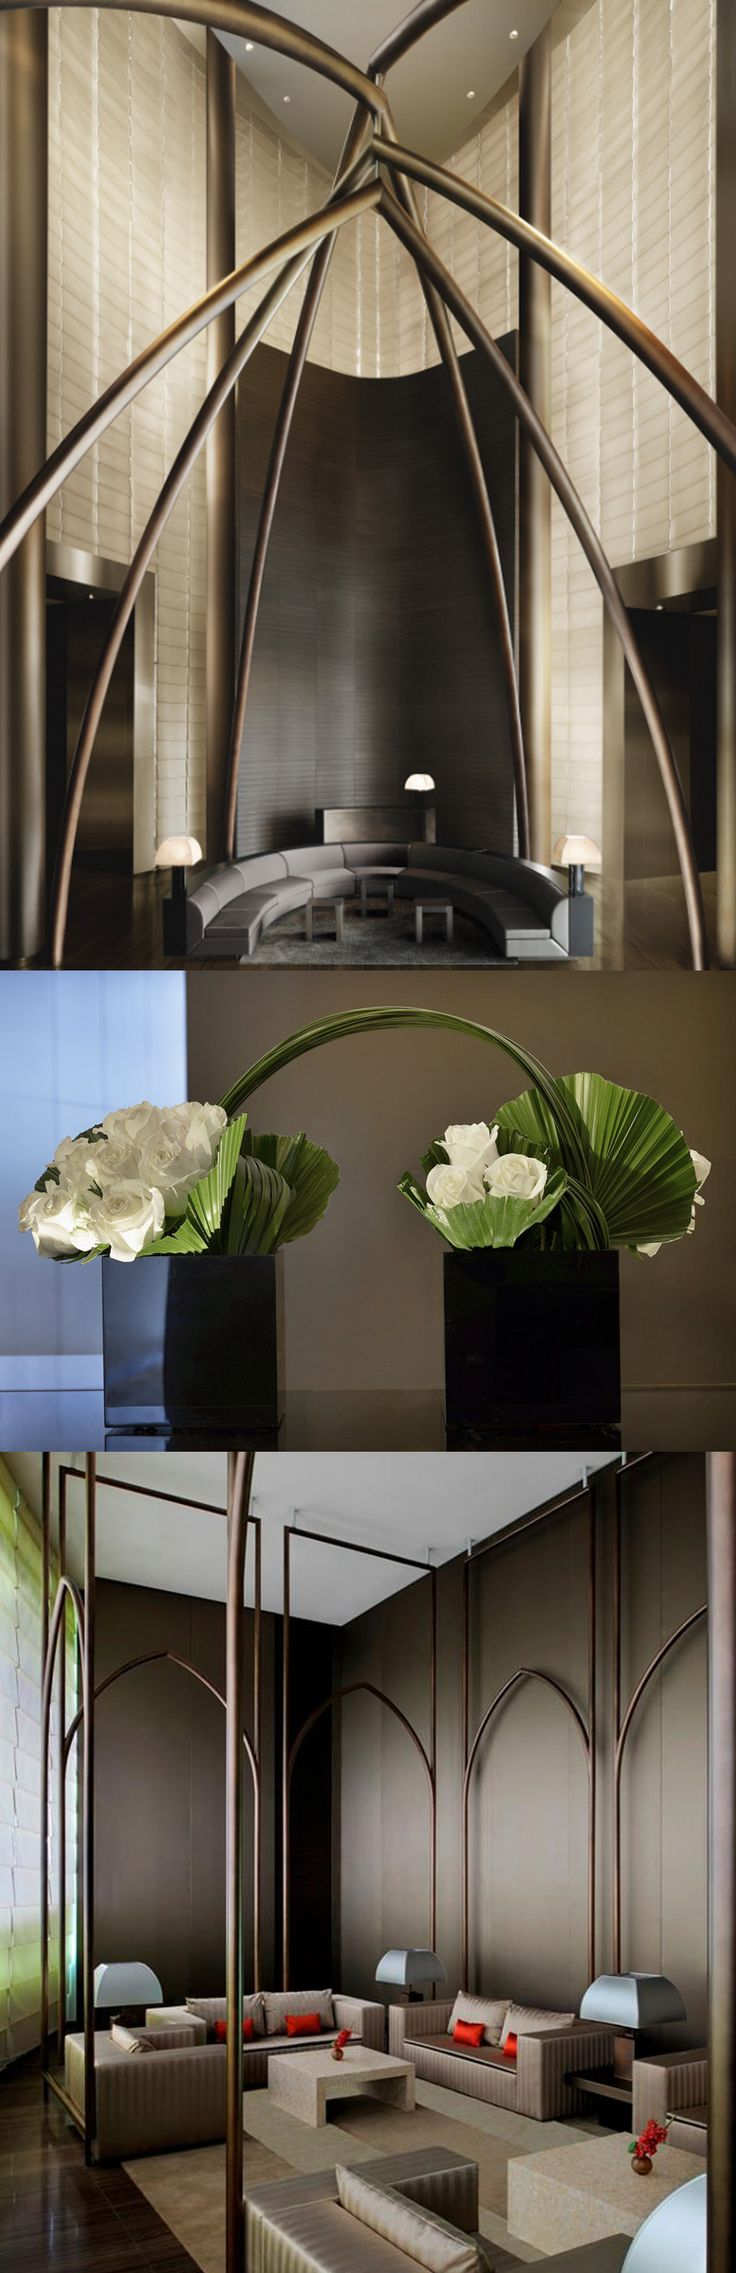 Armani_Hotel_Dubai| LBV ♥✤ | OMG I LOVE THIS, specially the hollow pointy arches!!